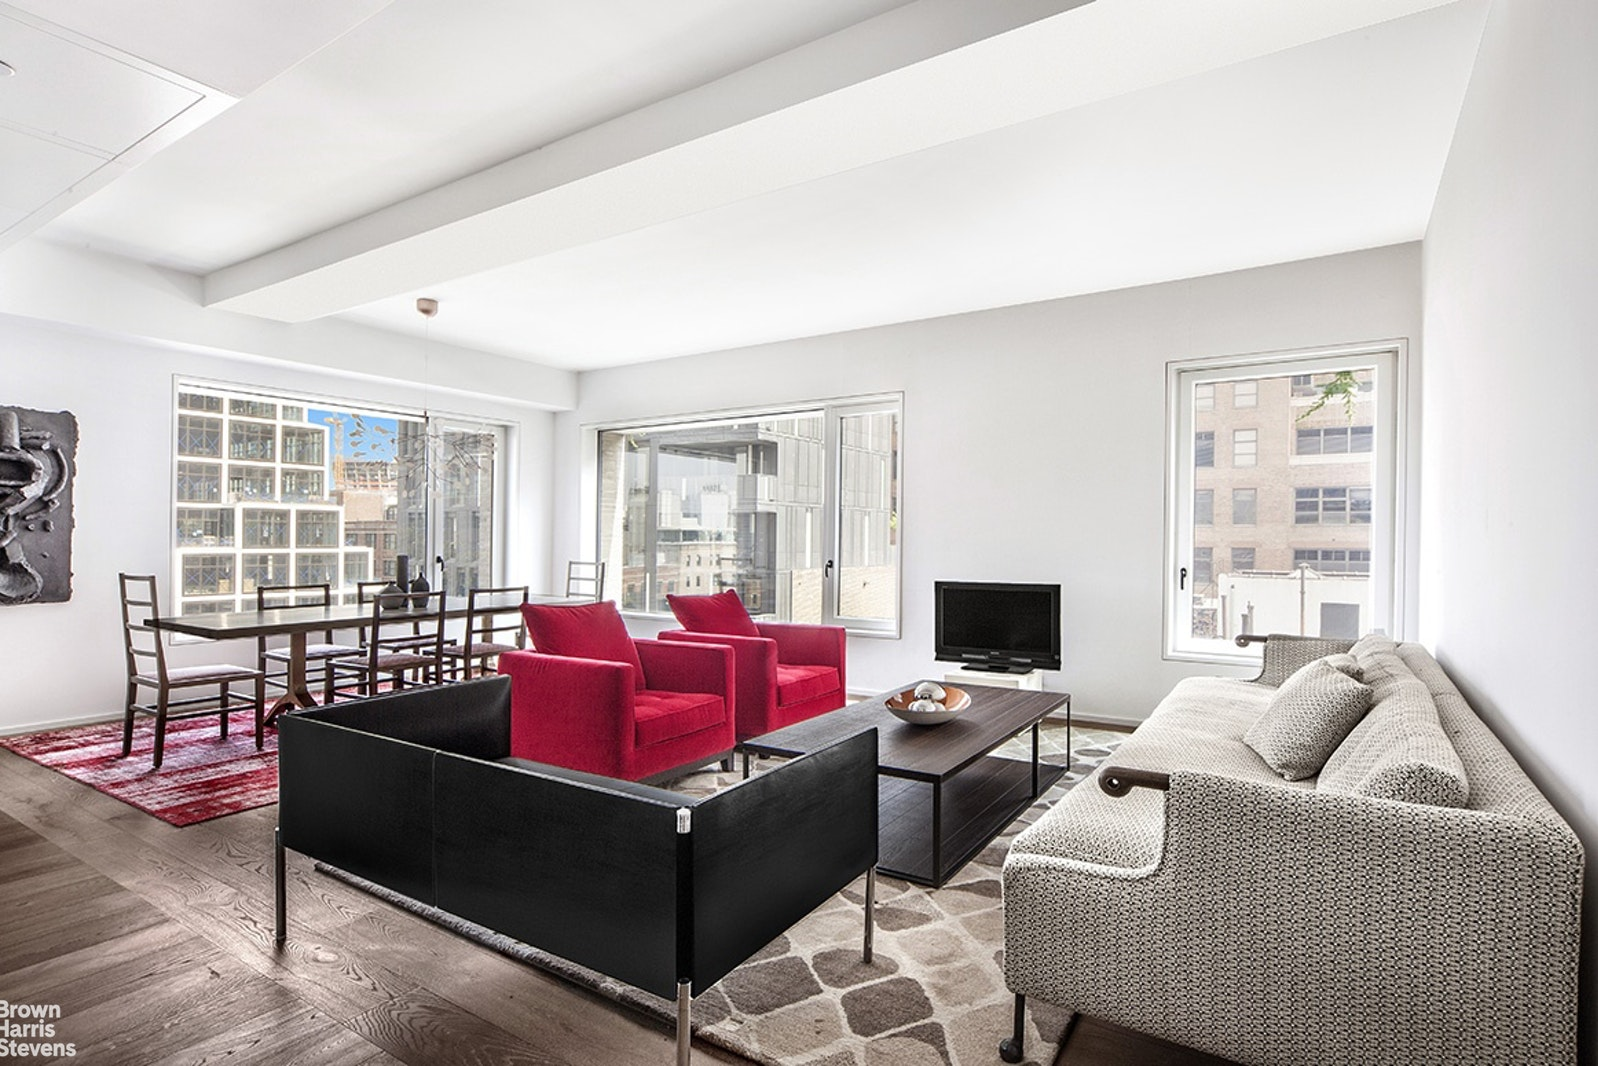 345 West 14th Street 8d, West Village, NYC, 10014, $2,995,000, Property For Sale, Halstead Real Estate, Photo 1